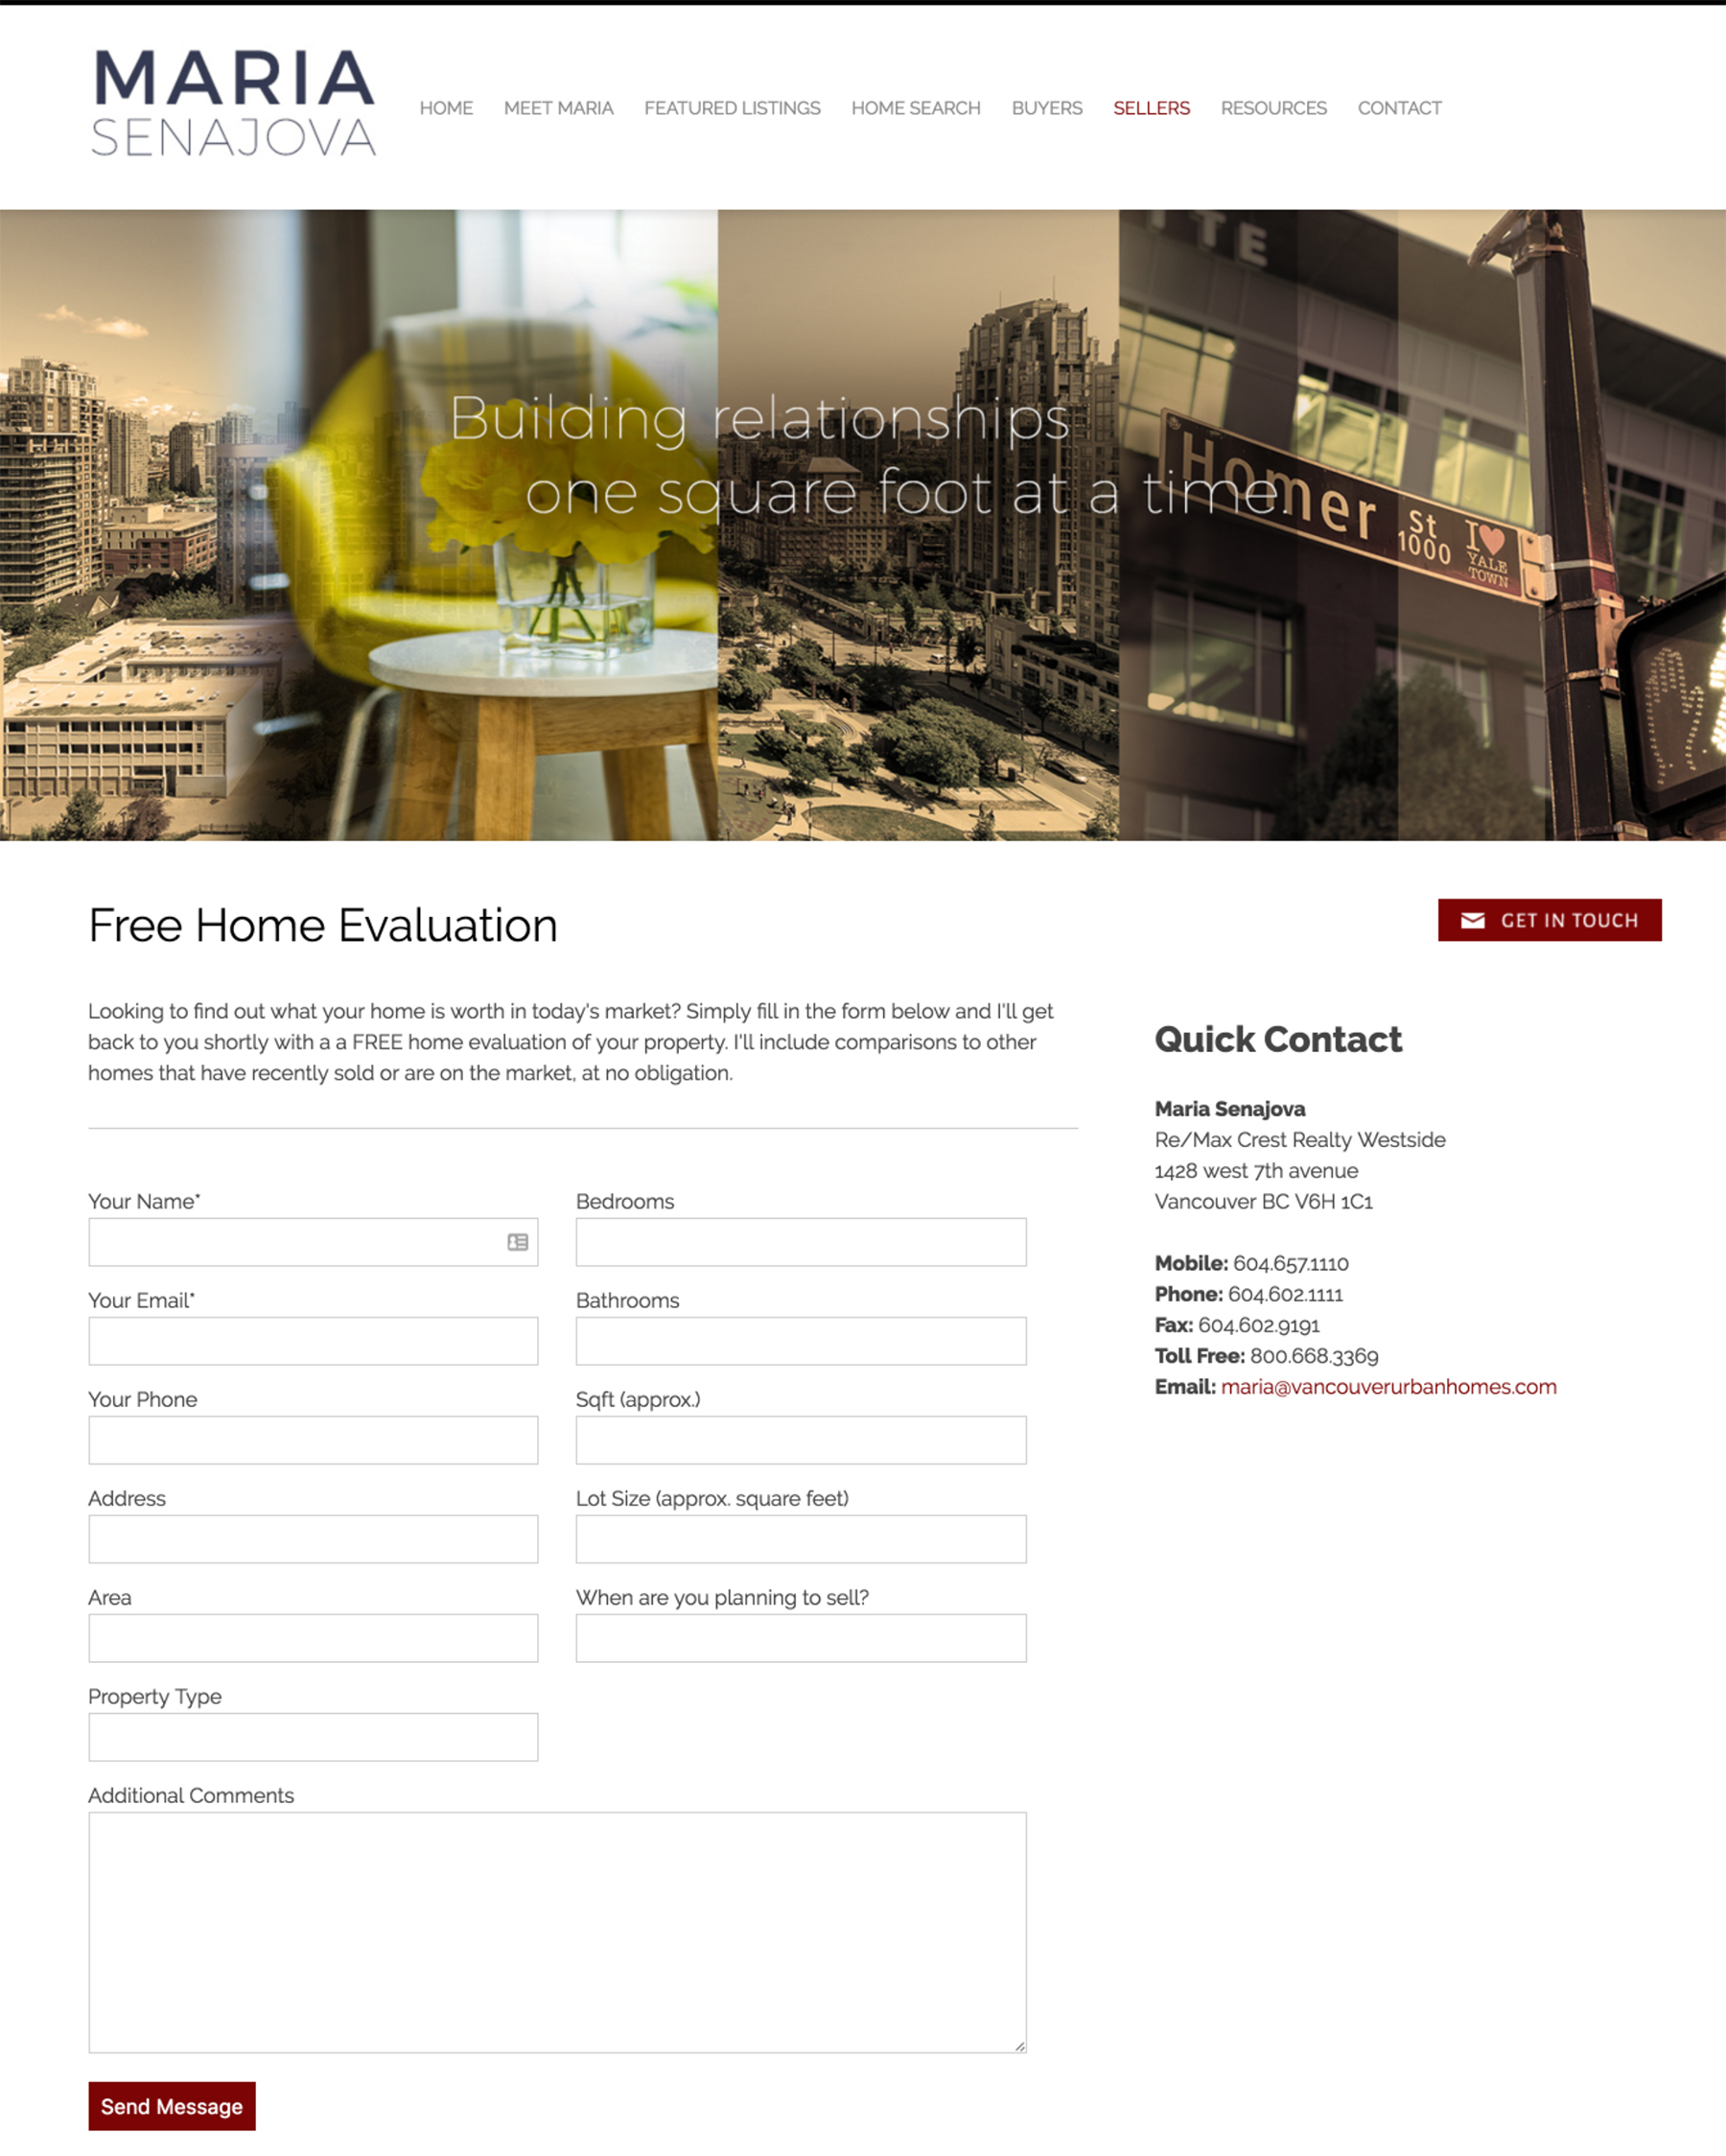 Example of a Home Evaluation Form on a RealtyNinja Real Estate Website